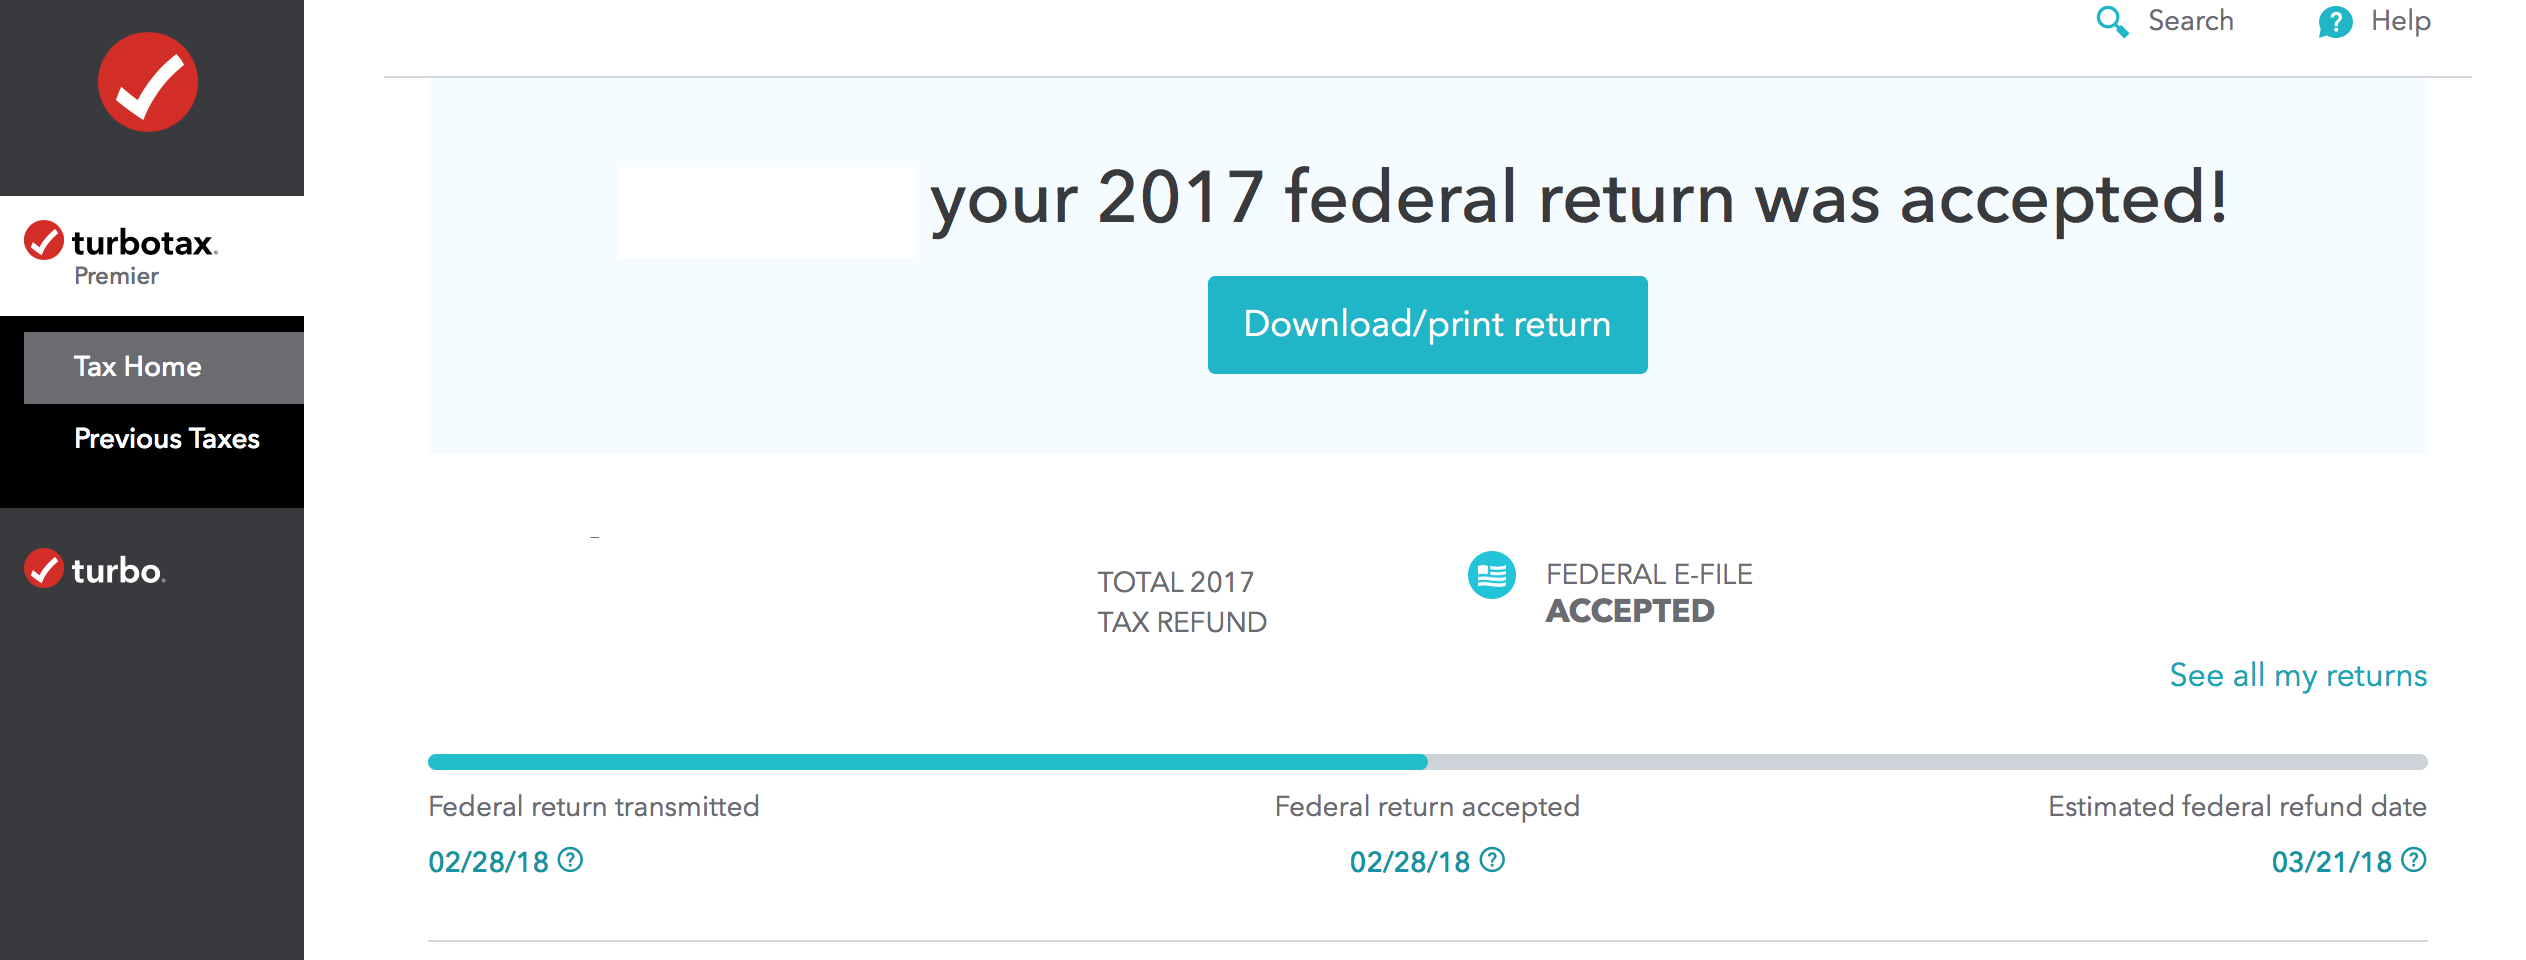 How To Download Turbotax Return Estimator 2018